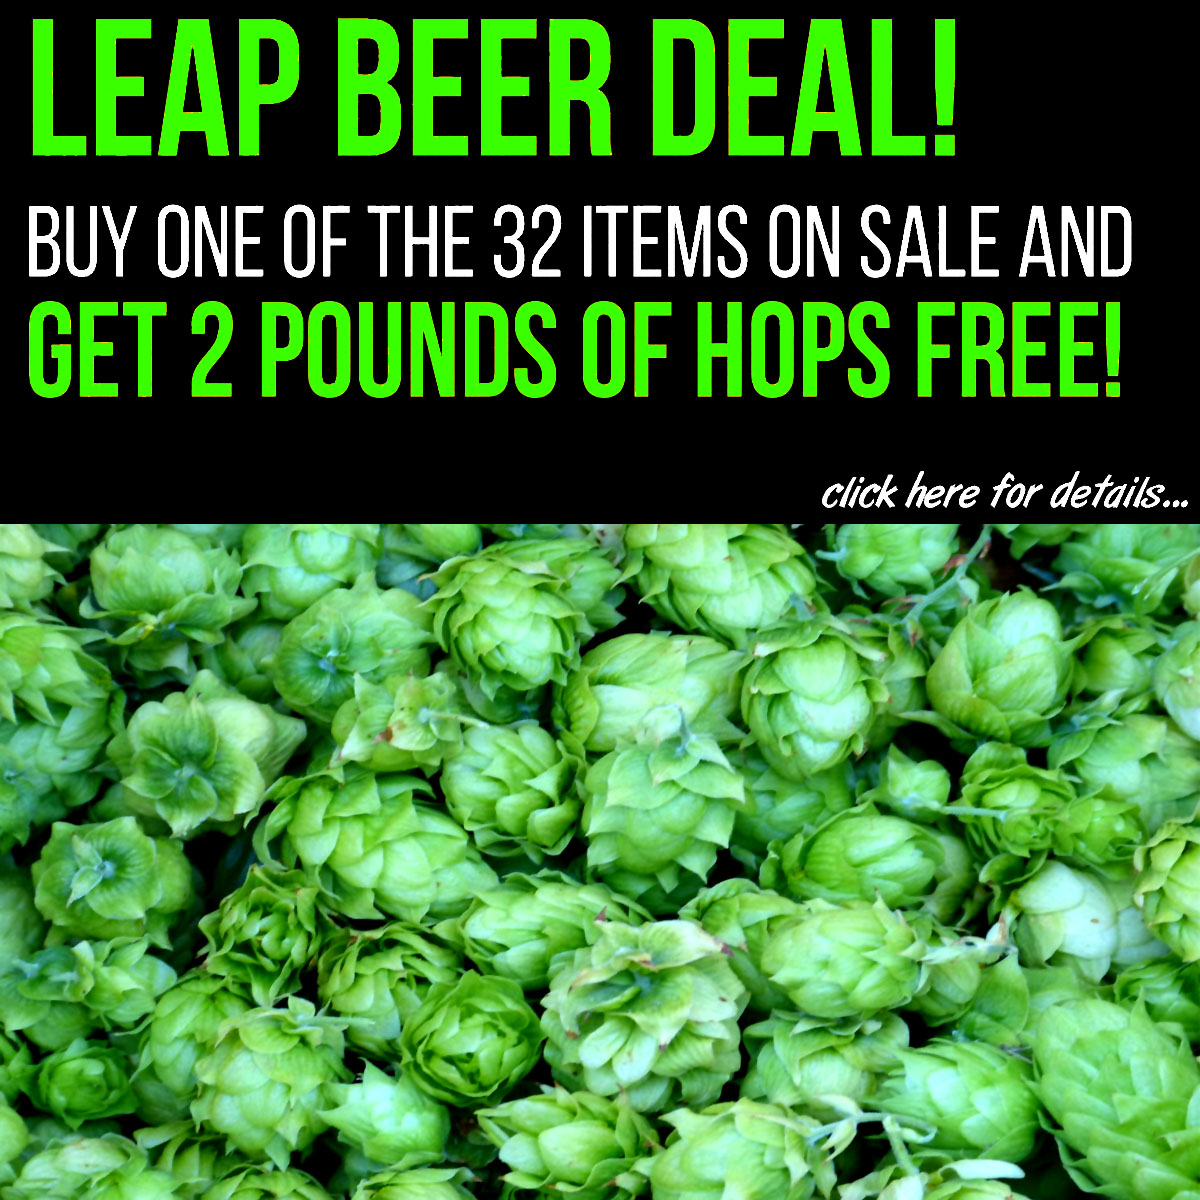 MoreBeer Use this MoreBeer.com promo code, purchase a More Beer Sale Item and get 2 Pounds of Hops for Free. Coupon Code